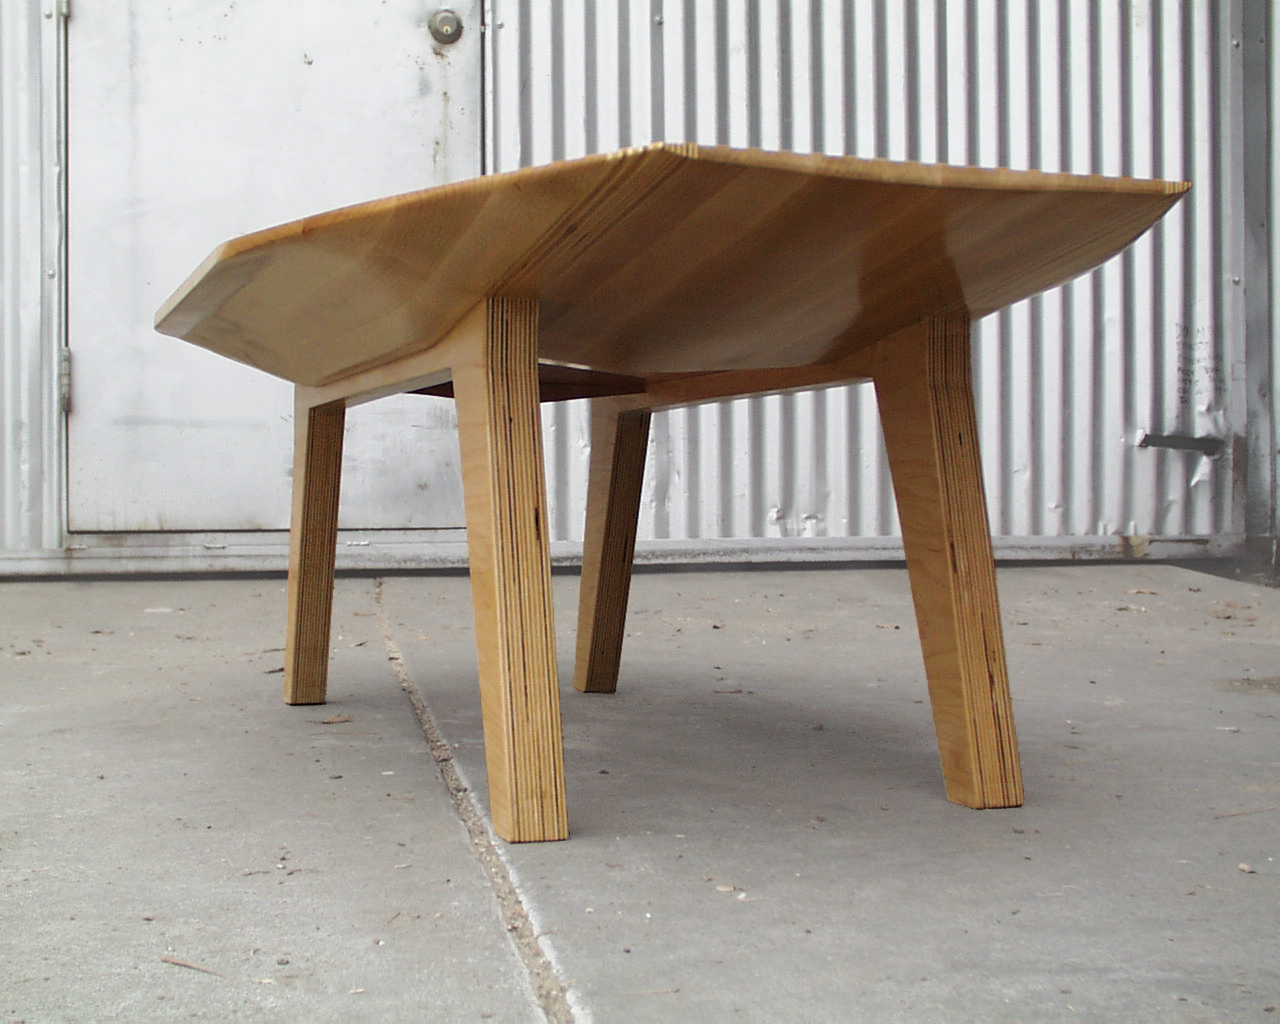 Bottom of Maple Table